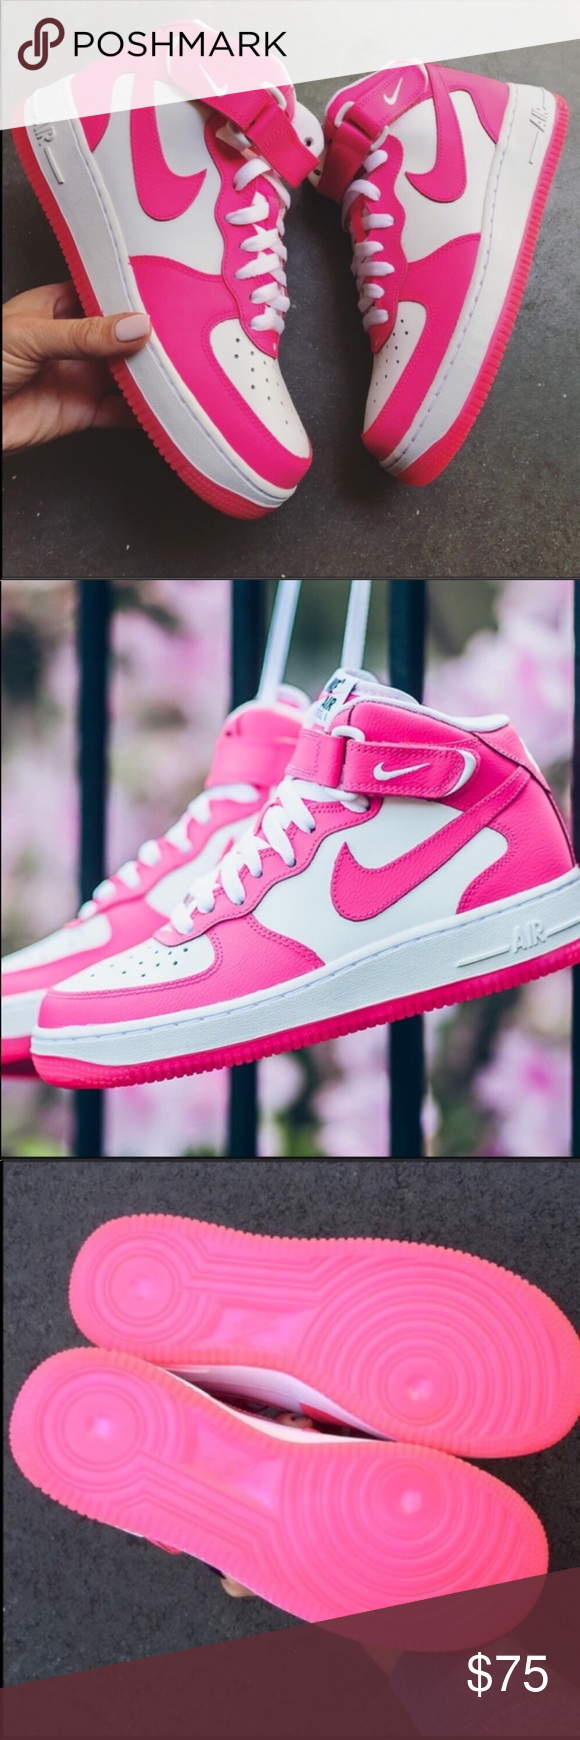 best service 9240e f38a8 NWB 🎀 NIKE AIR FORCE 1 MID New never worn NIKE AIR FORCE ONE MID 😍